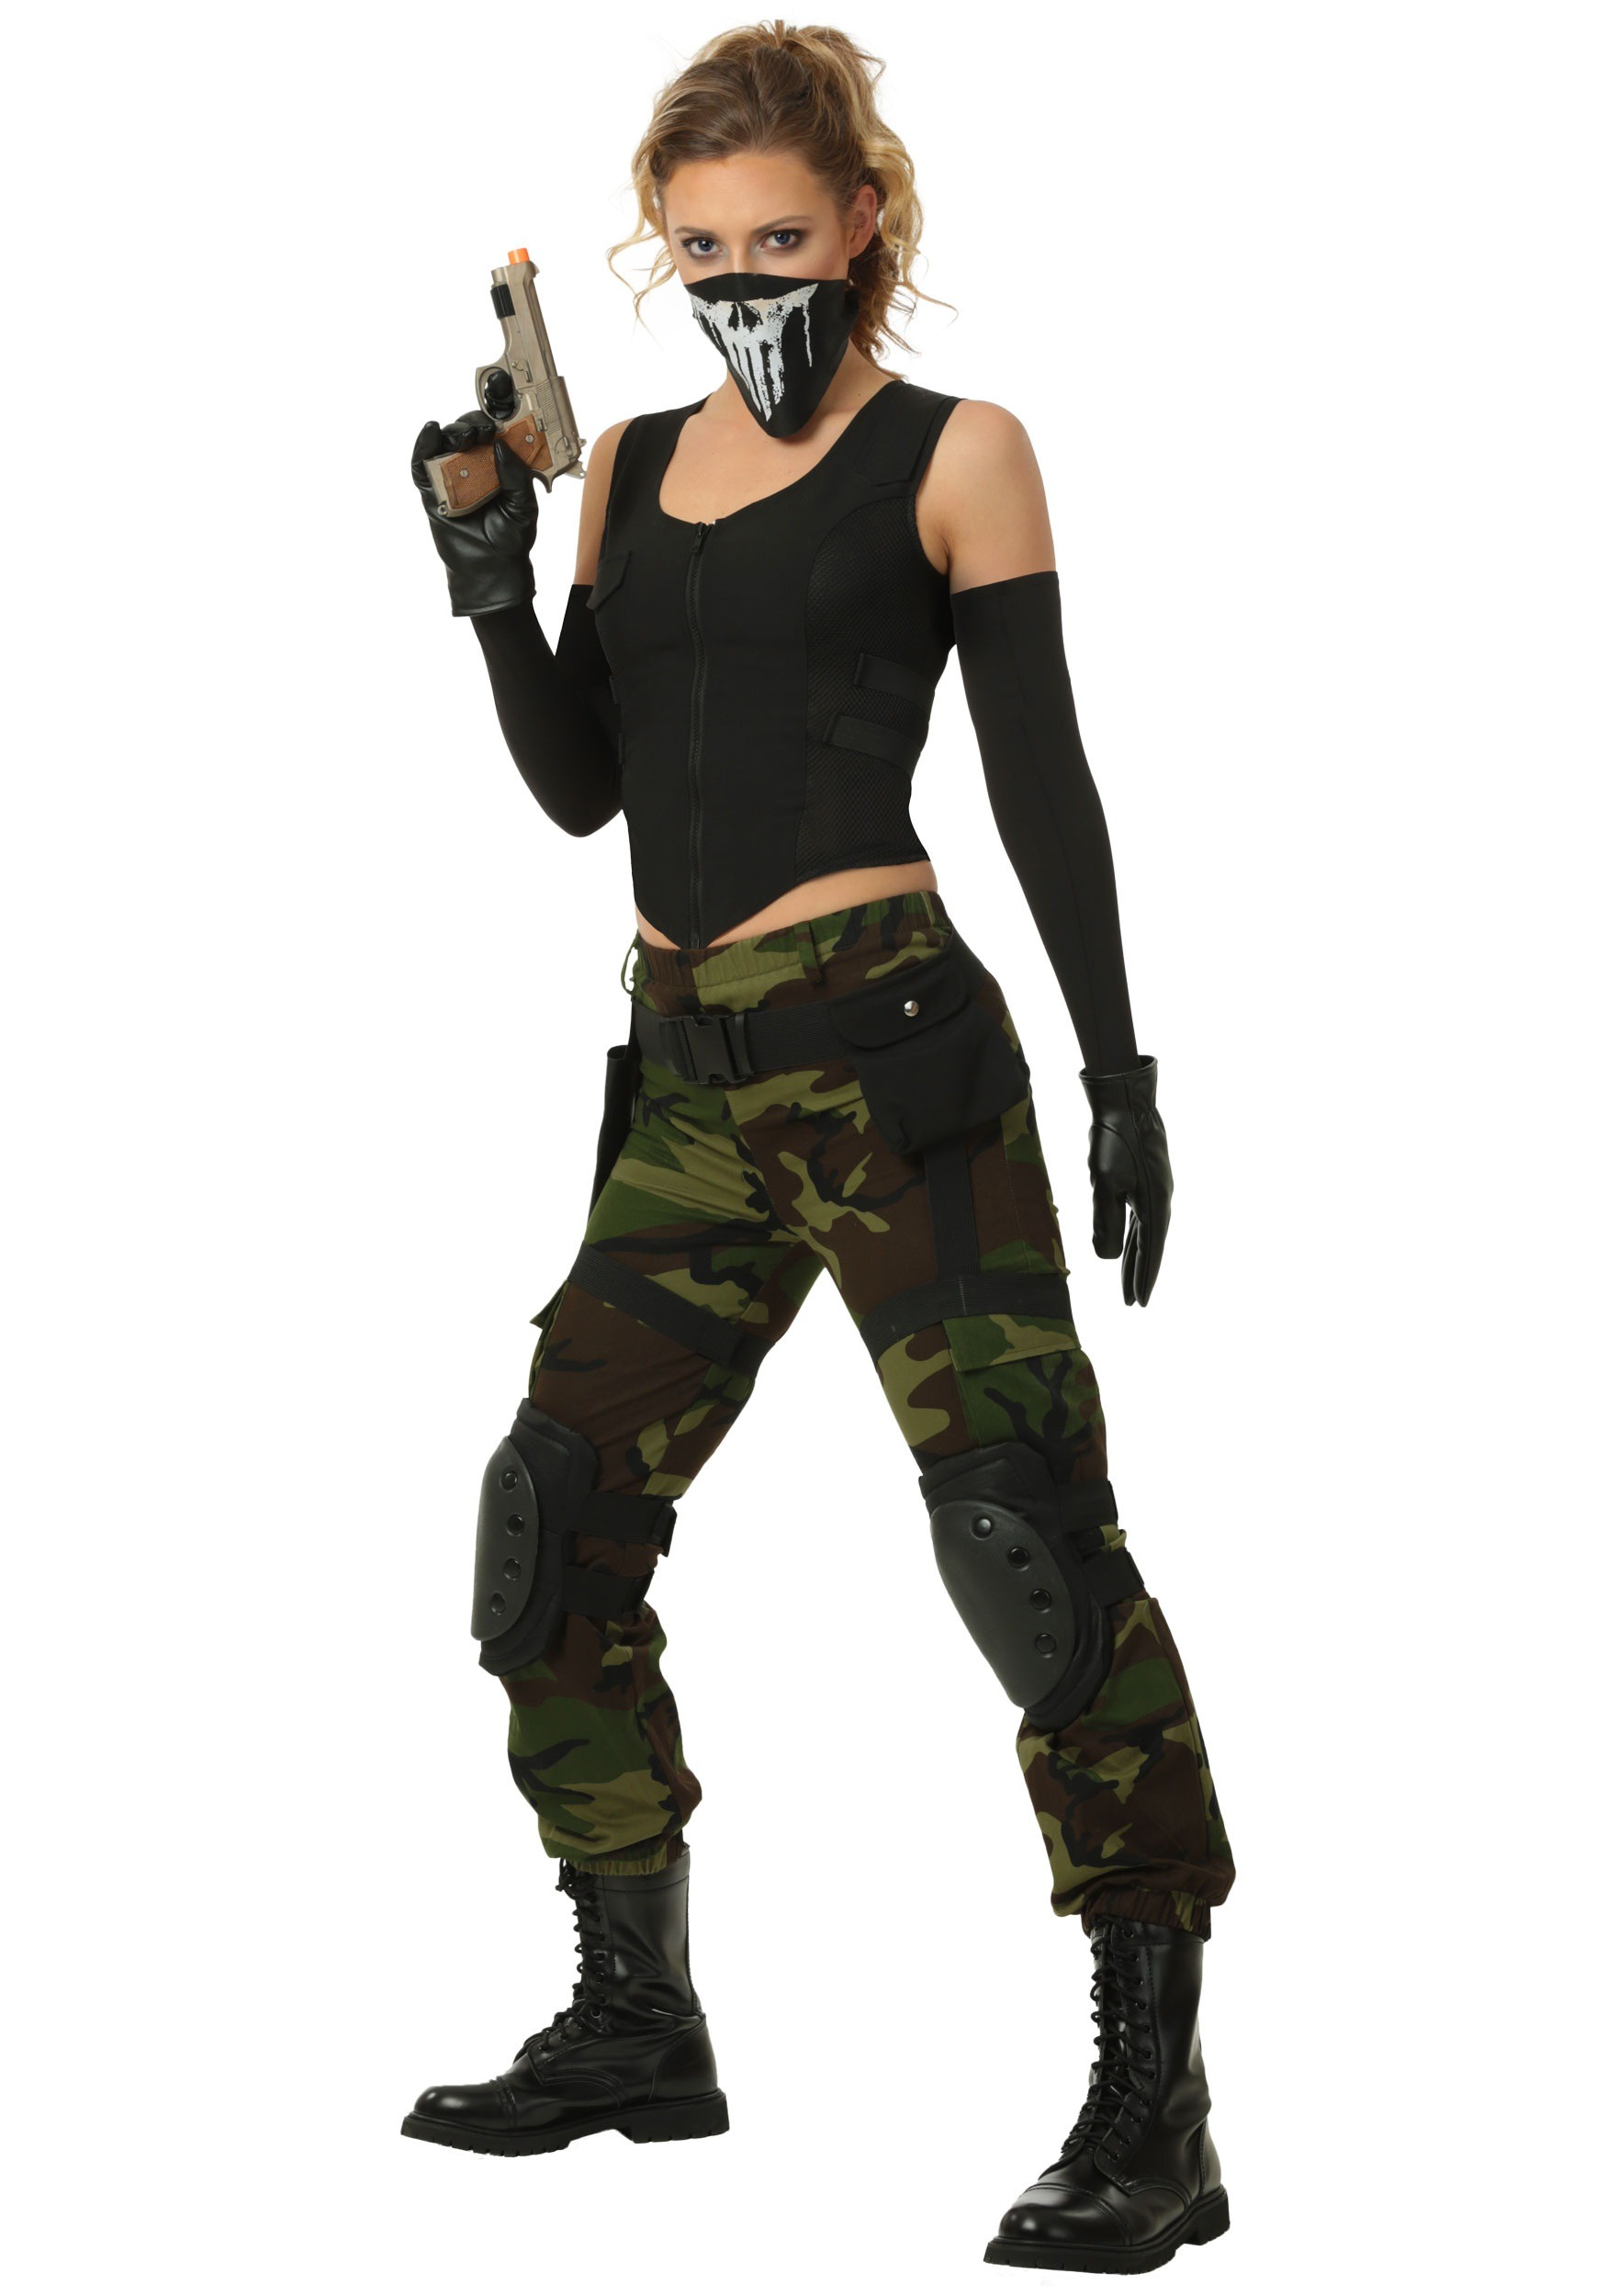 INOpets.com Anything for Pets Parents & Their Pets Fighting Soldier Plus Size Costume for Women